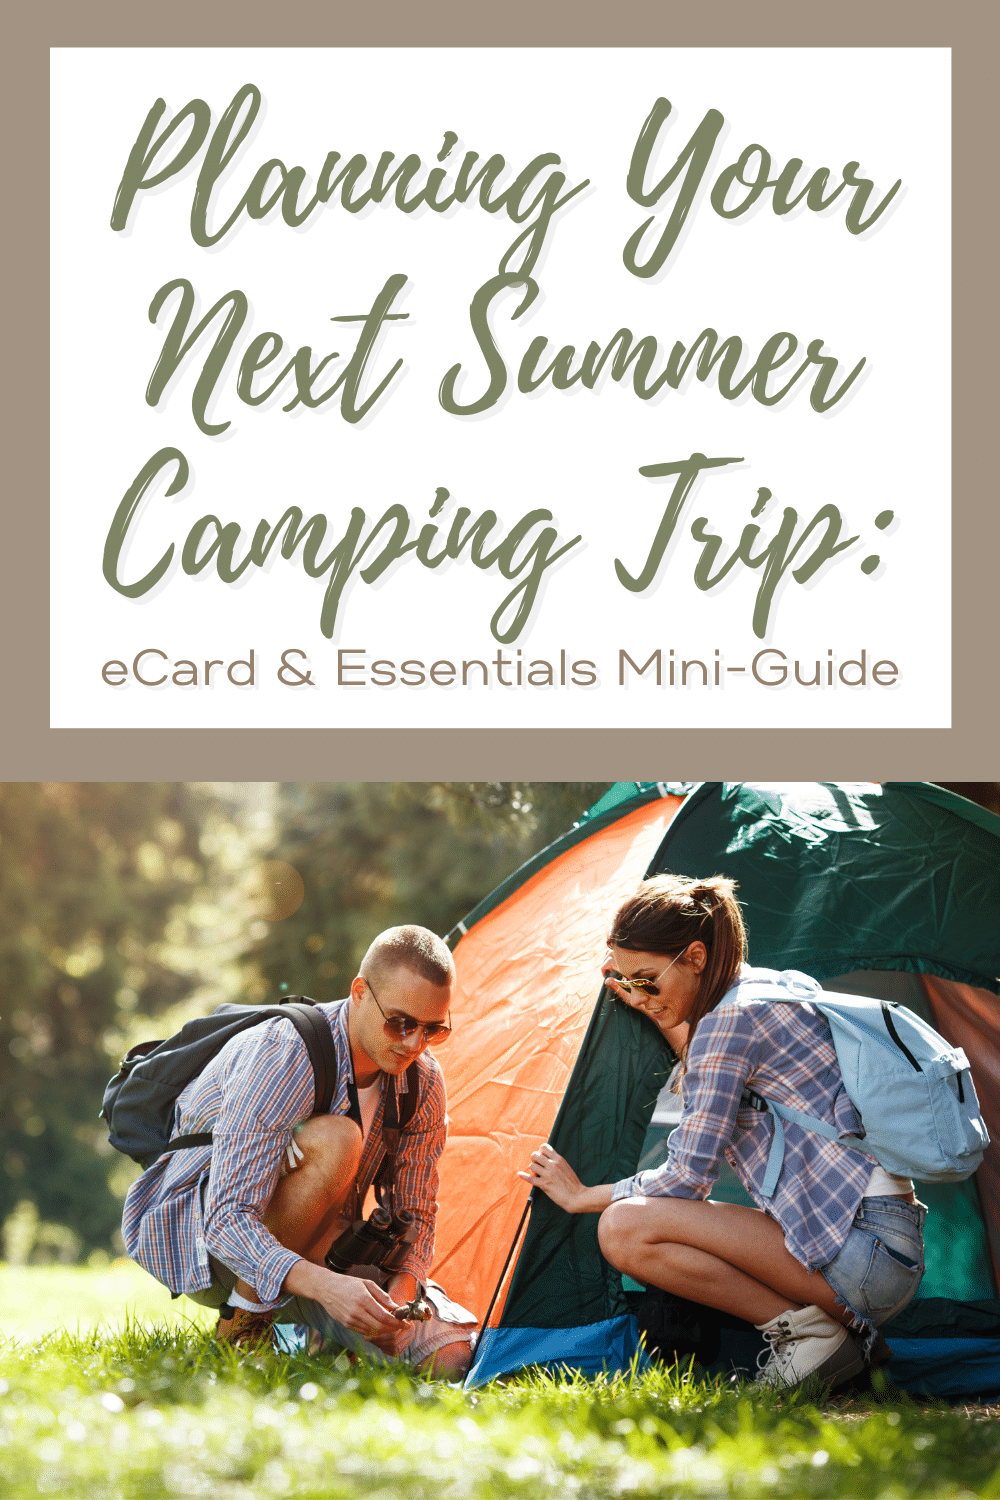 Planning Your Next Summer Camping Trip: eCard & Essentials Mini-Guide